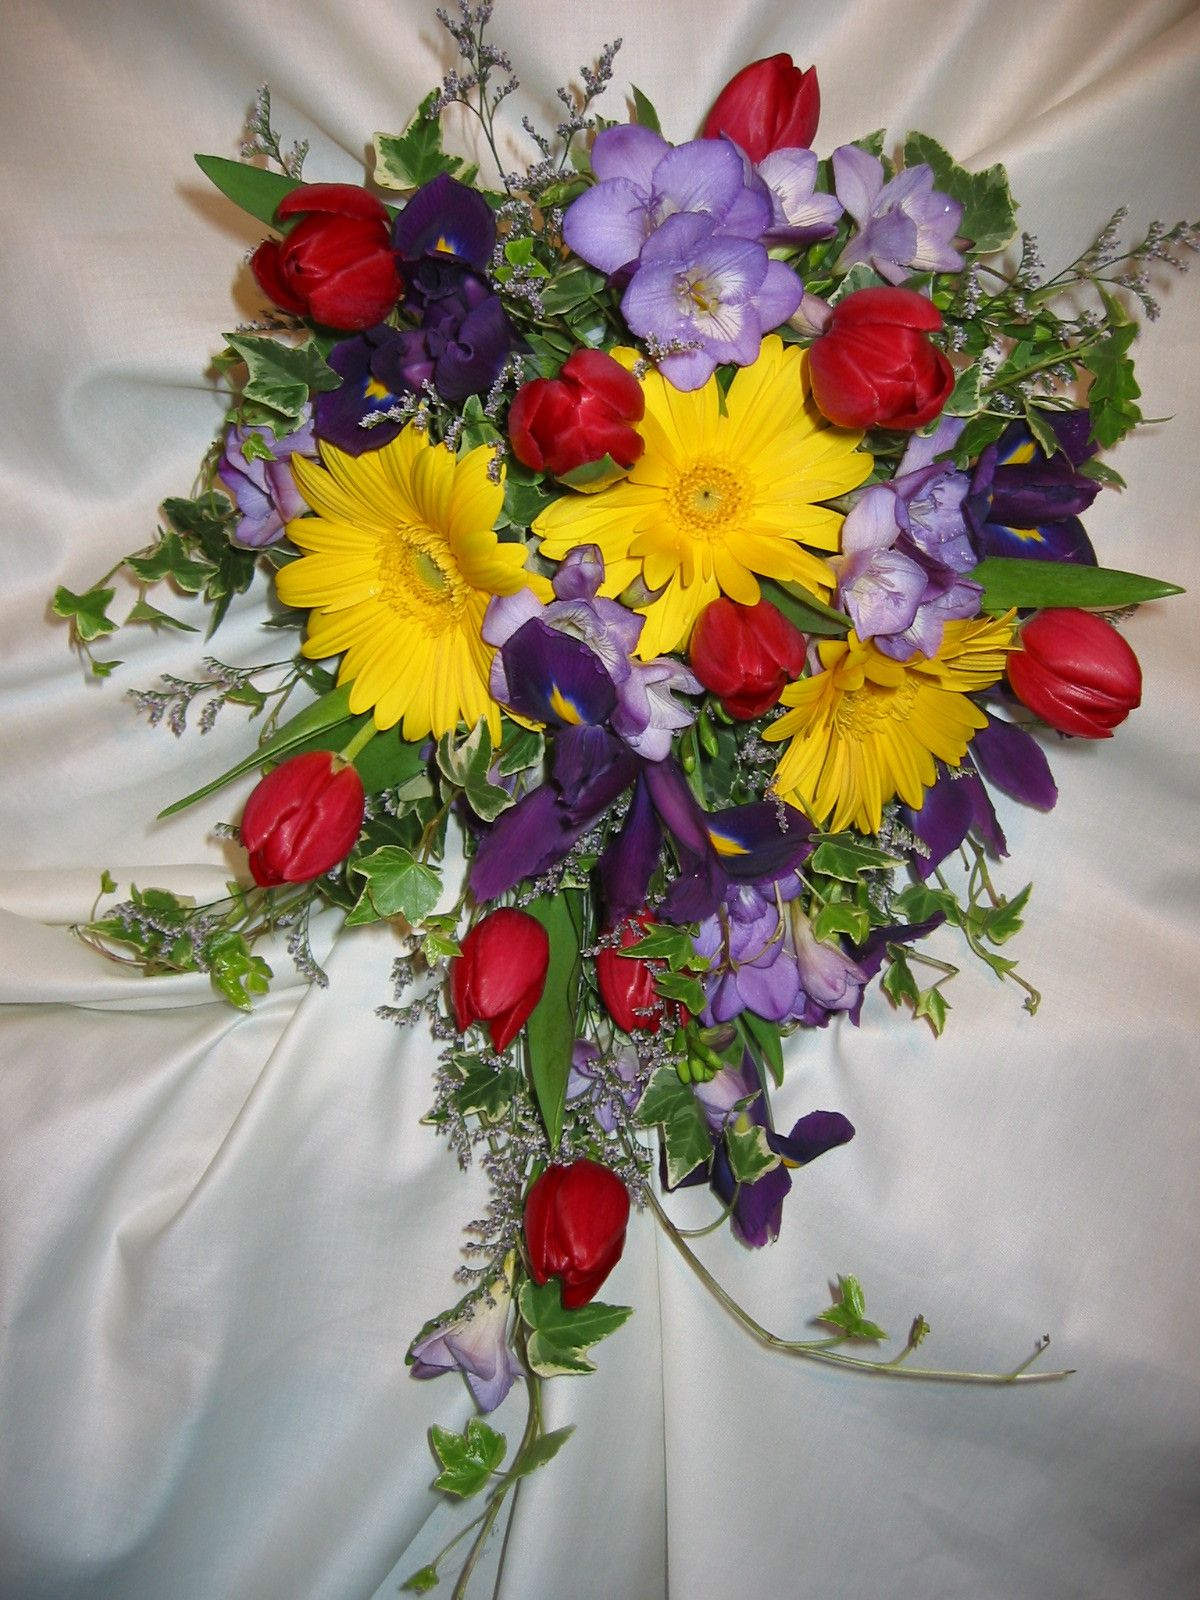 Wow A Striking Color Combination Yellow Gerbera Daisies Purple Freesia Red Tulips Purple